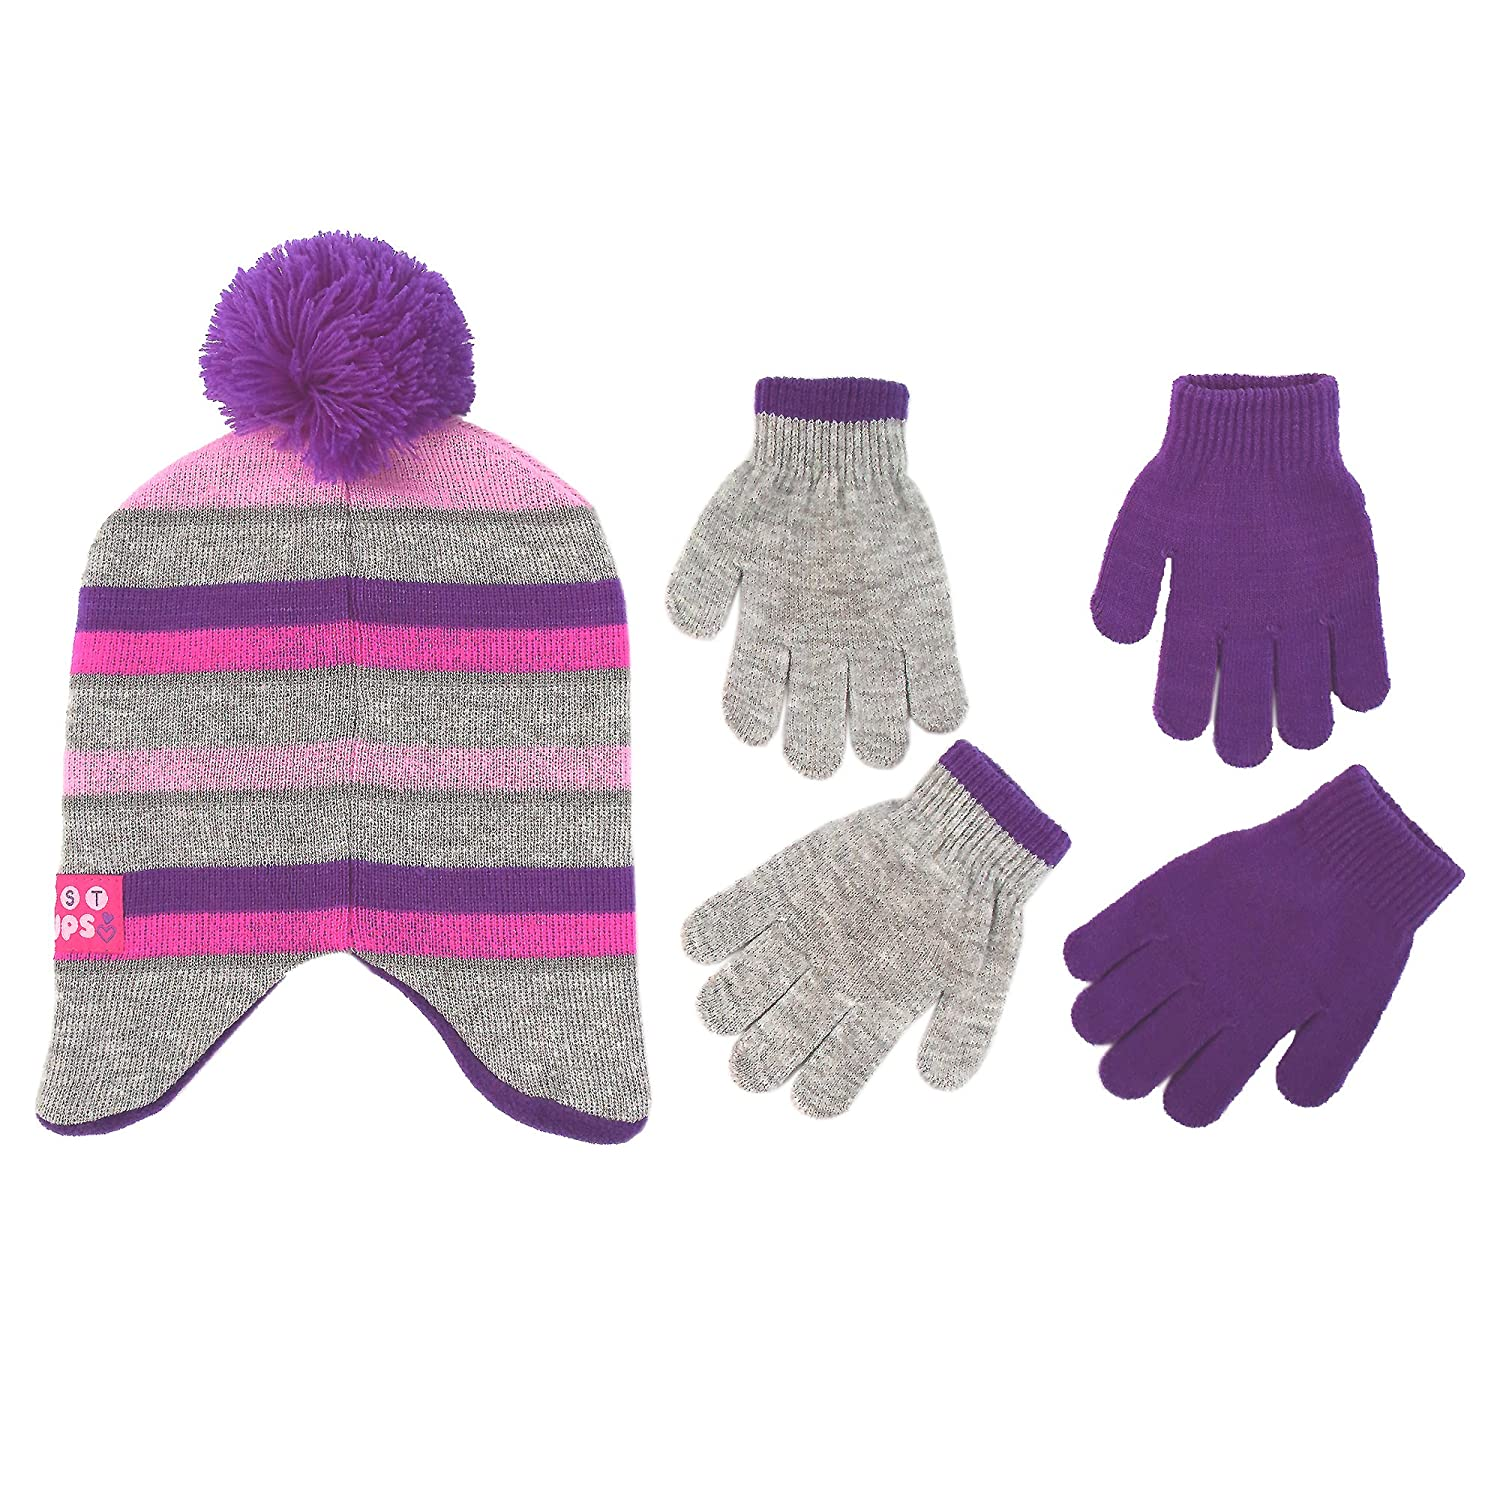 Little Girls Age 4-7 Hat /& 2 Pair Gloves Set, Grey//Purple Nickelodeon Little Girls Paw Patrol Character Hat and 2 Pair Mittens or Gloves Cold Weather Set Age 2-7